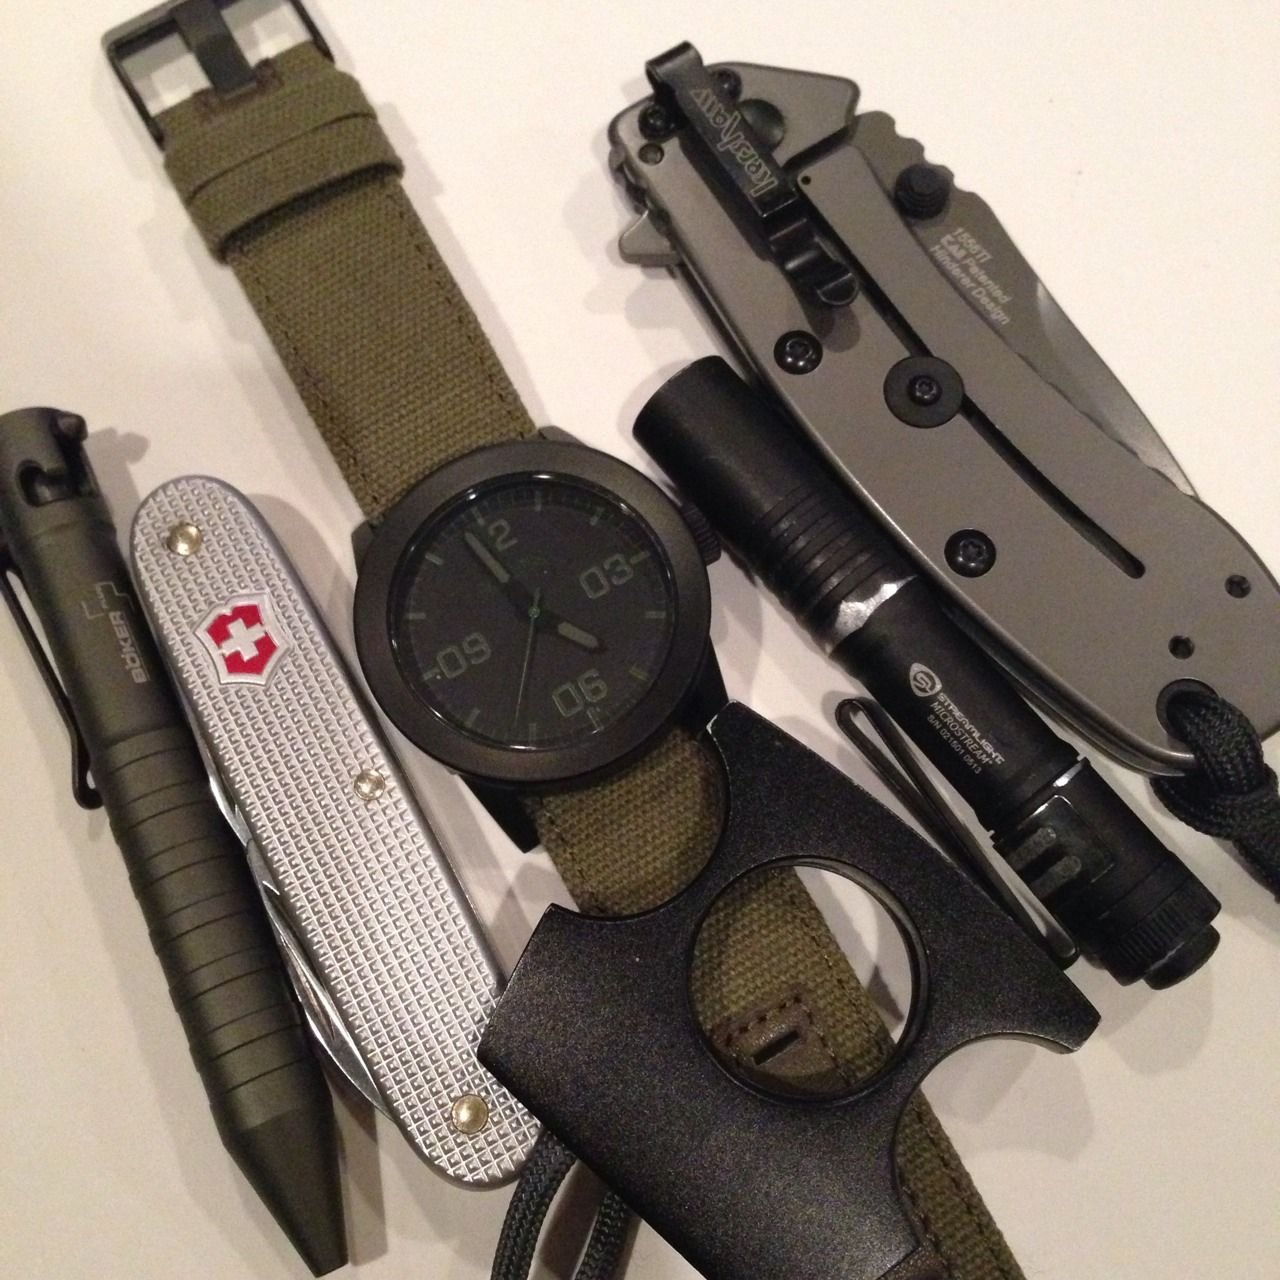 Every Day Carry or E.D.C. is an ideology and spirit of being prepared. Join The Prepared Sheepdog and explore EDC with us! Subscribe to our youtube channel for reviews and ideas! www.youtube.com/...